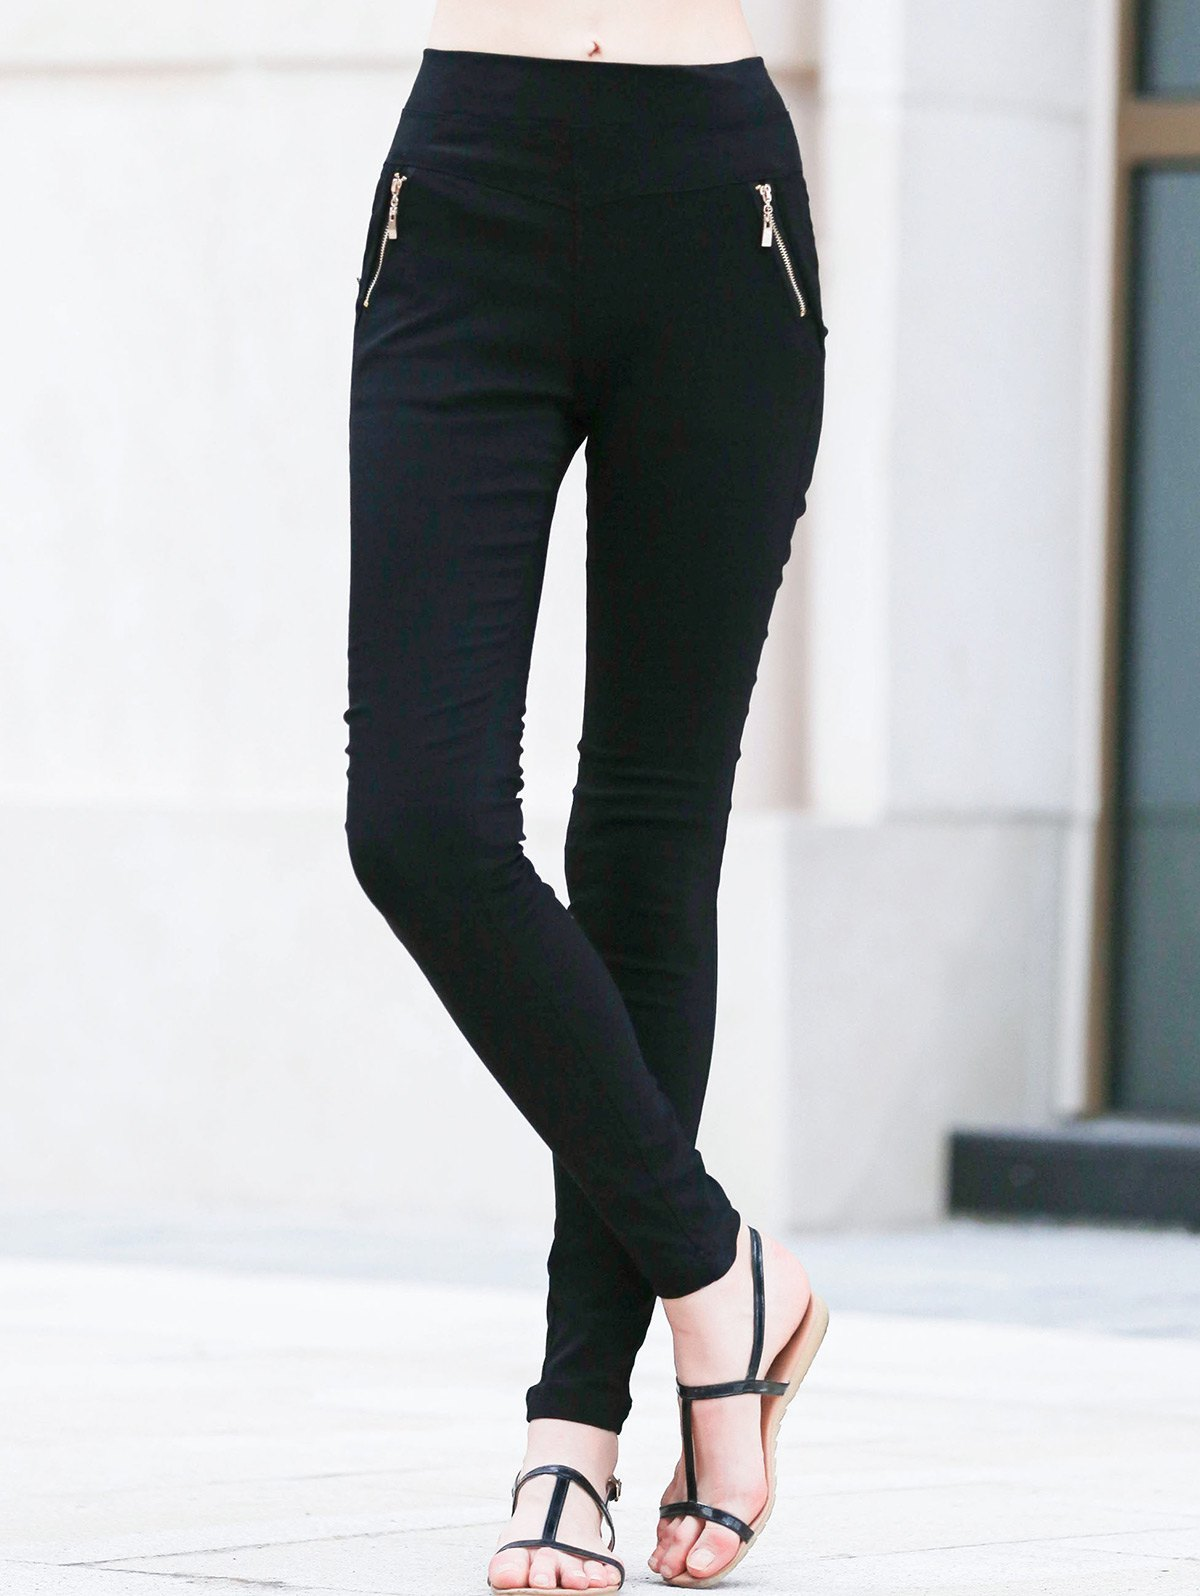 Zipped Skinny Black Pencil Pants